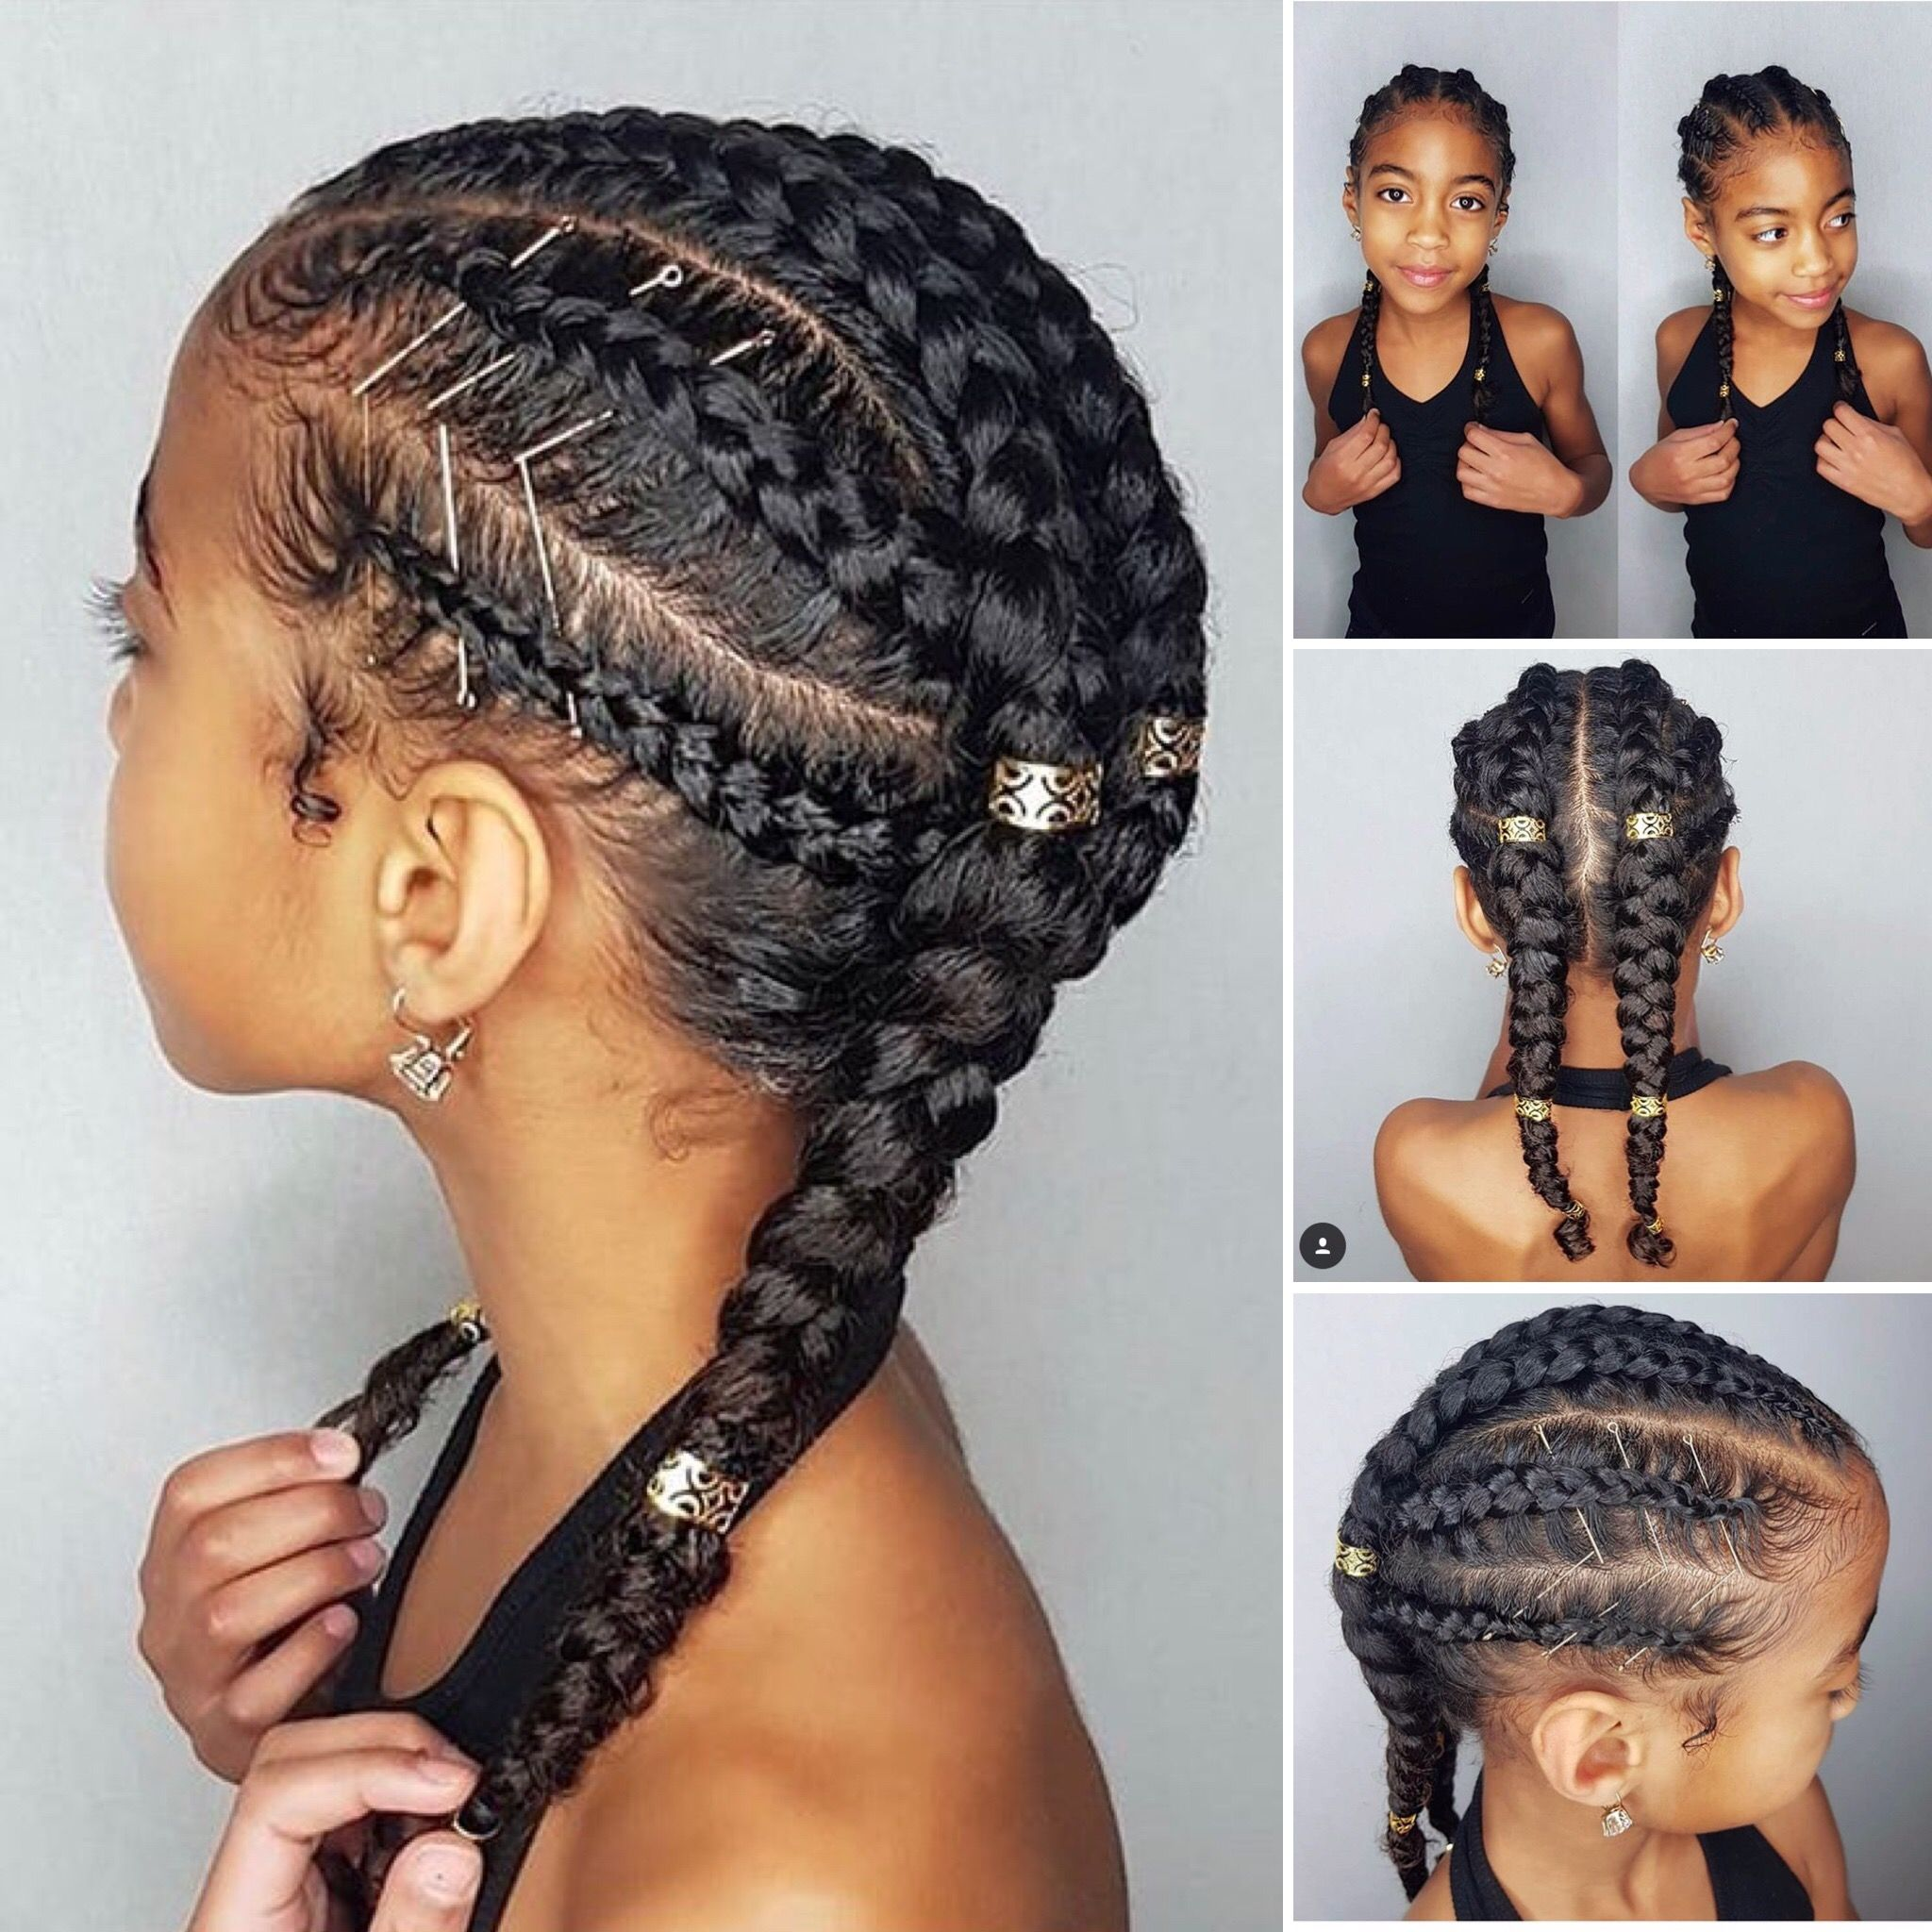 This Hairstyle Is Too Cute With Images Mixed Race